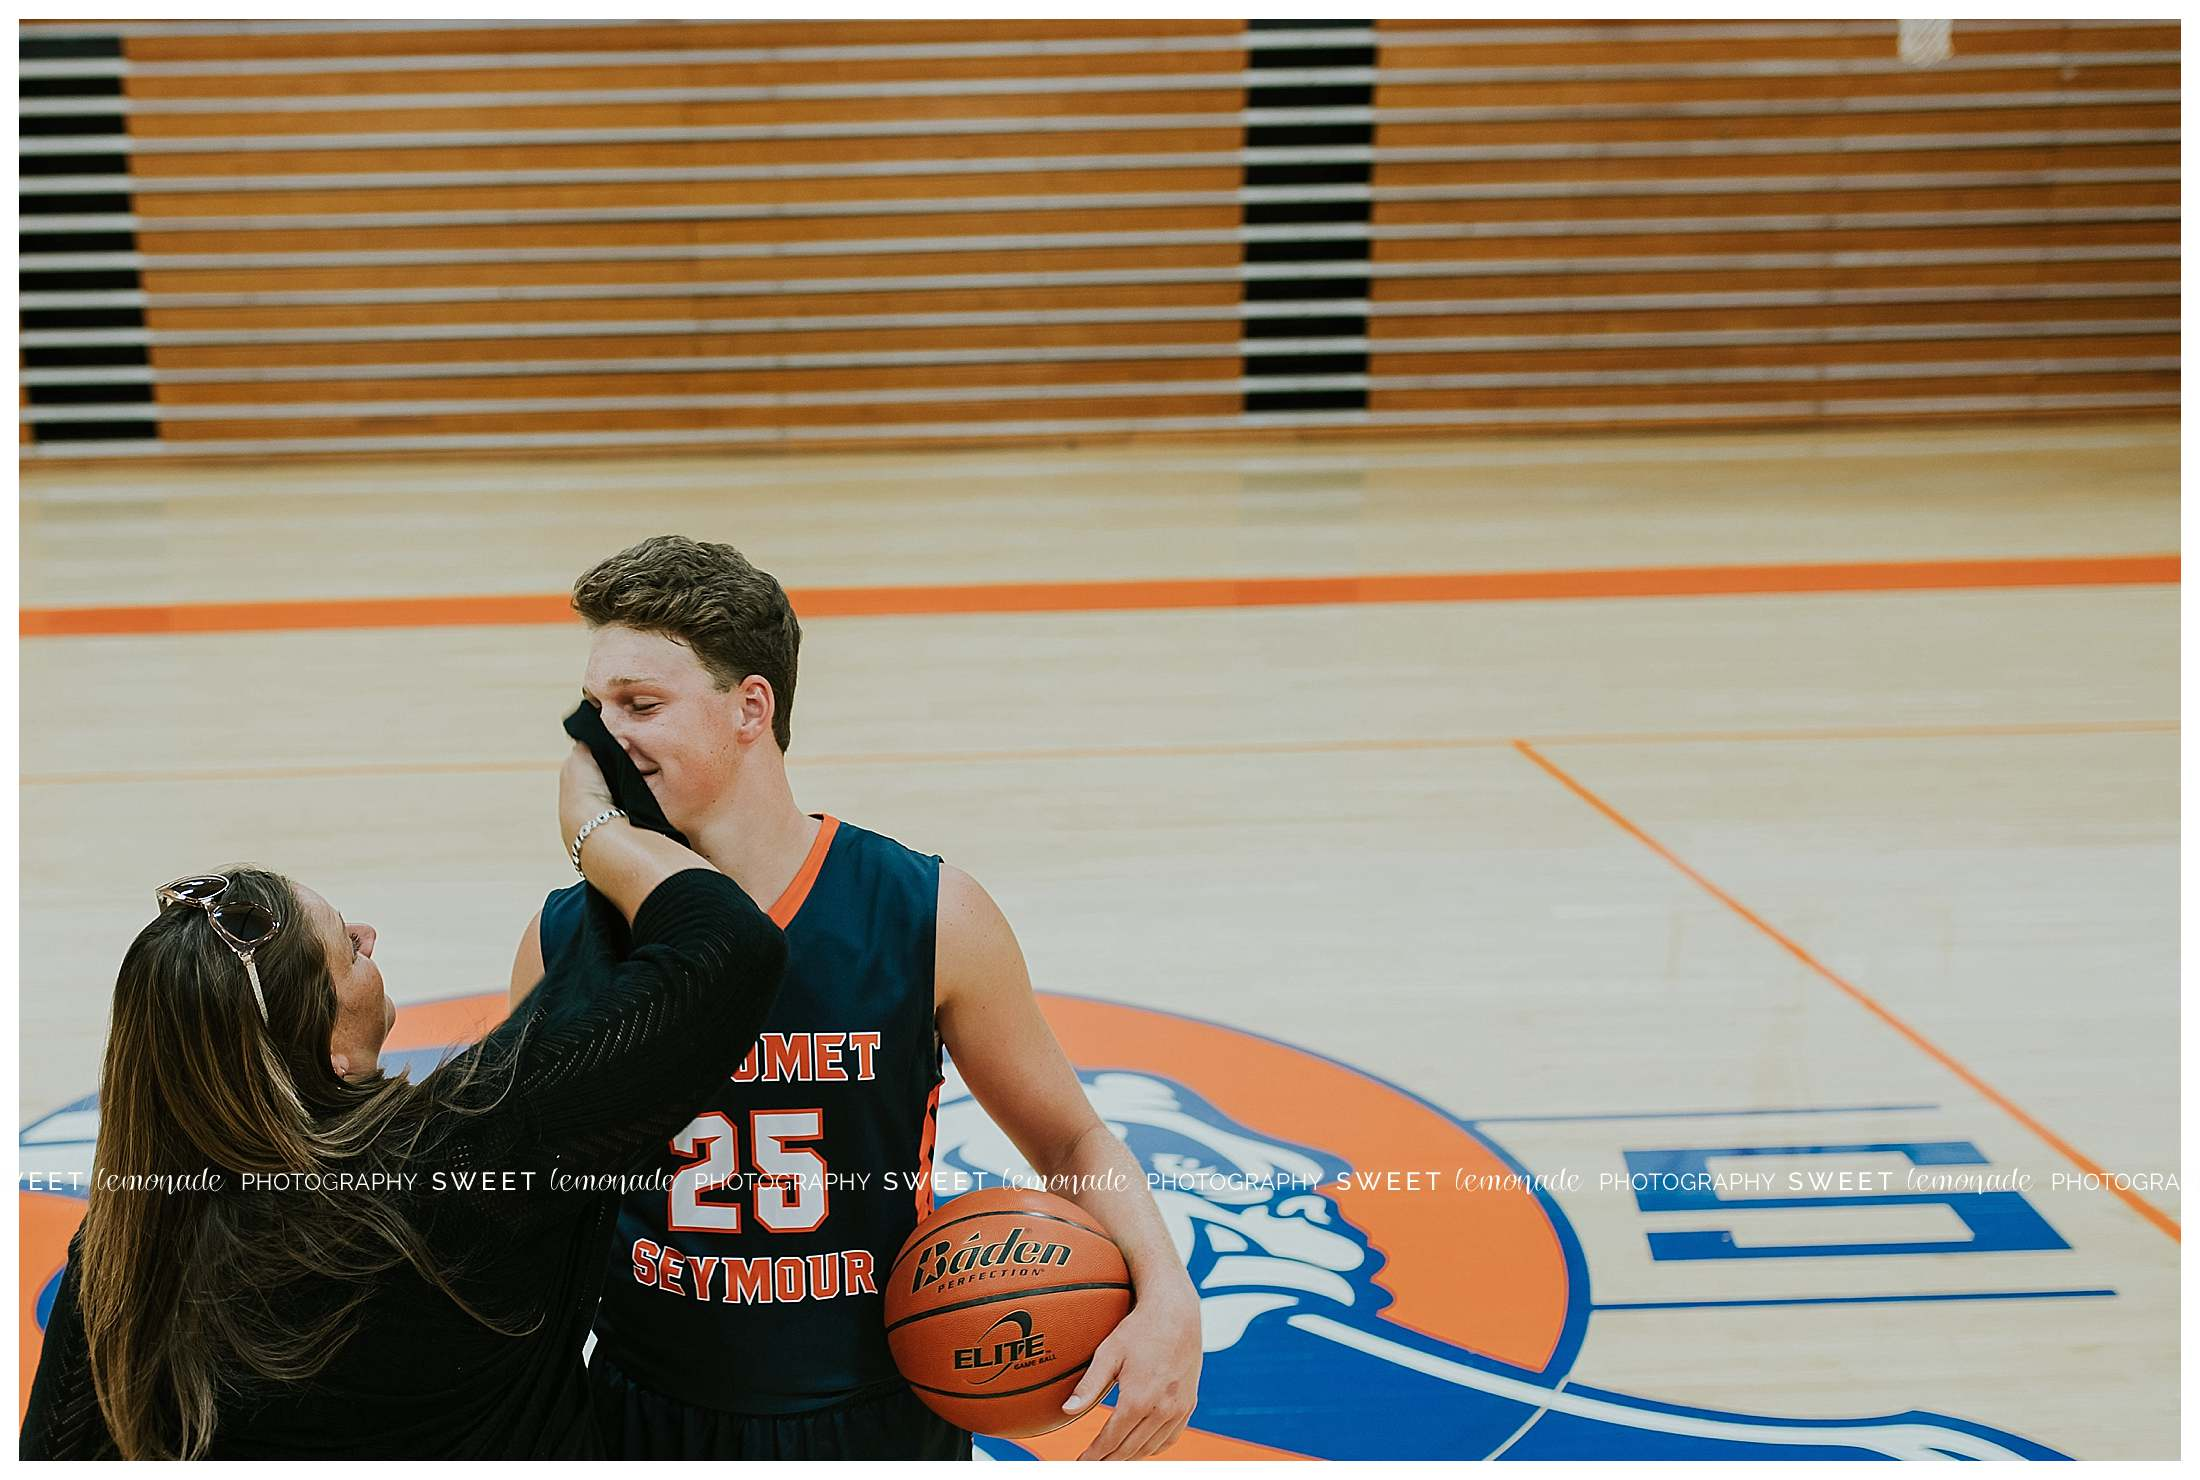 mahomet-bulldogs-basketball-champaign-county-illinois-senior-photography_1595.jpg